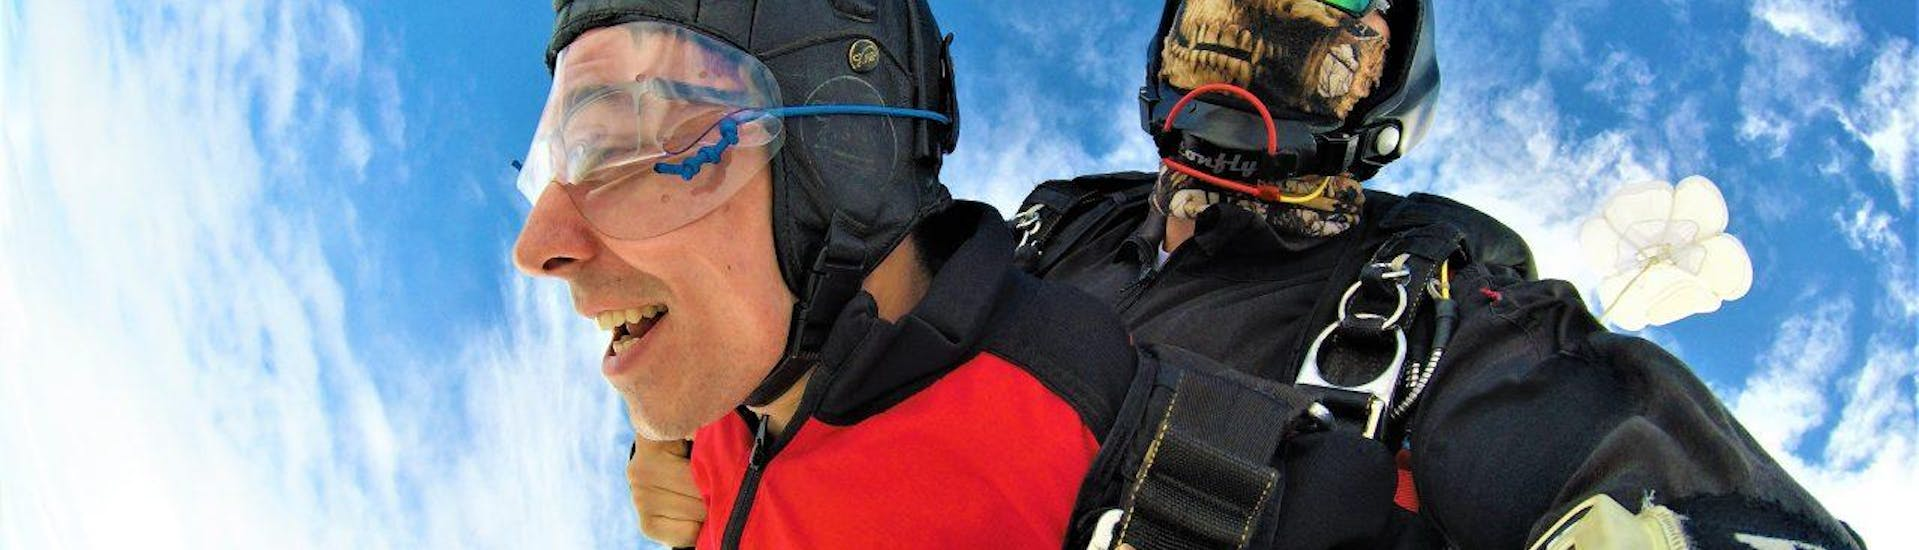 Tandem Skydive from 4000m - Black Forest